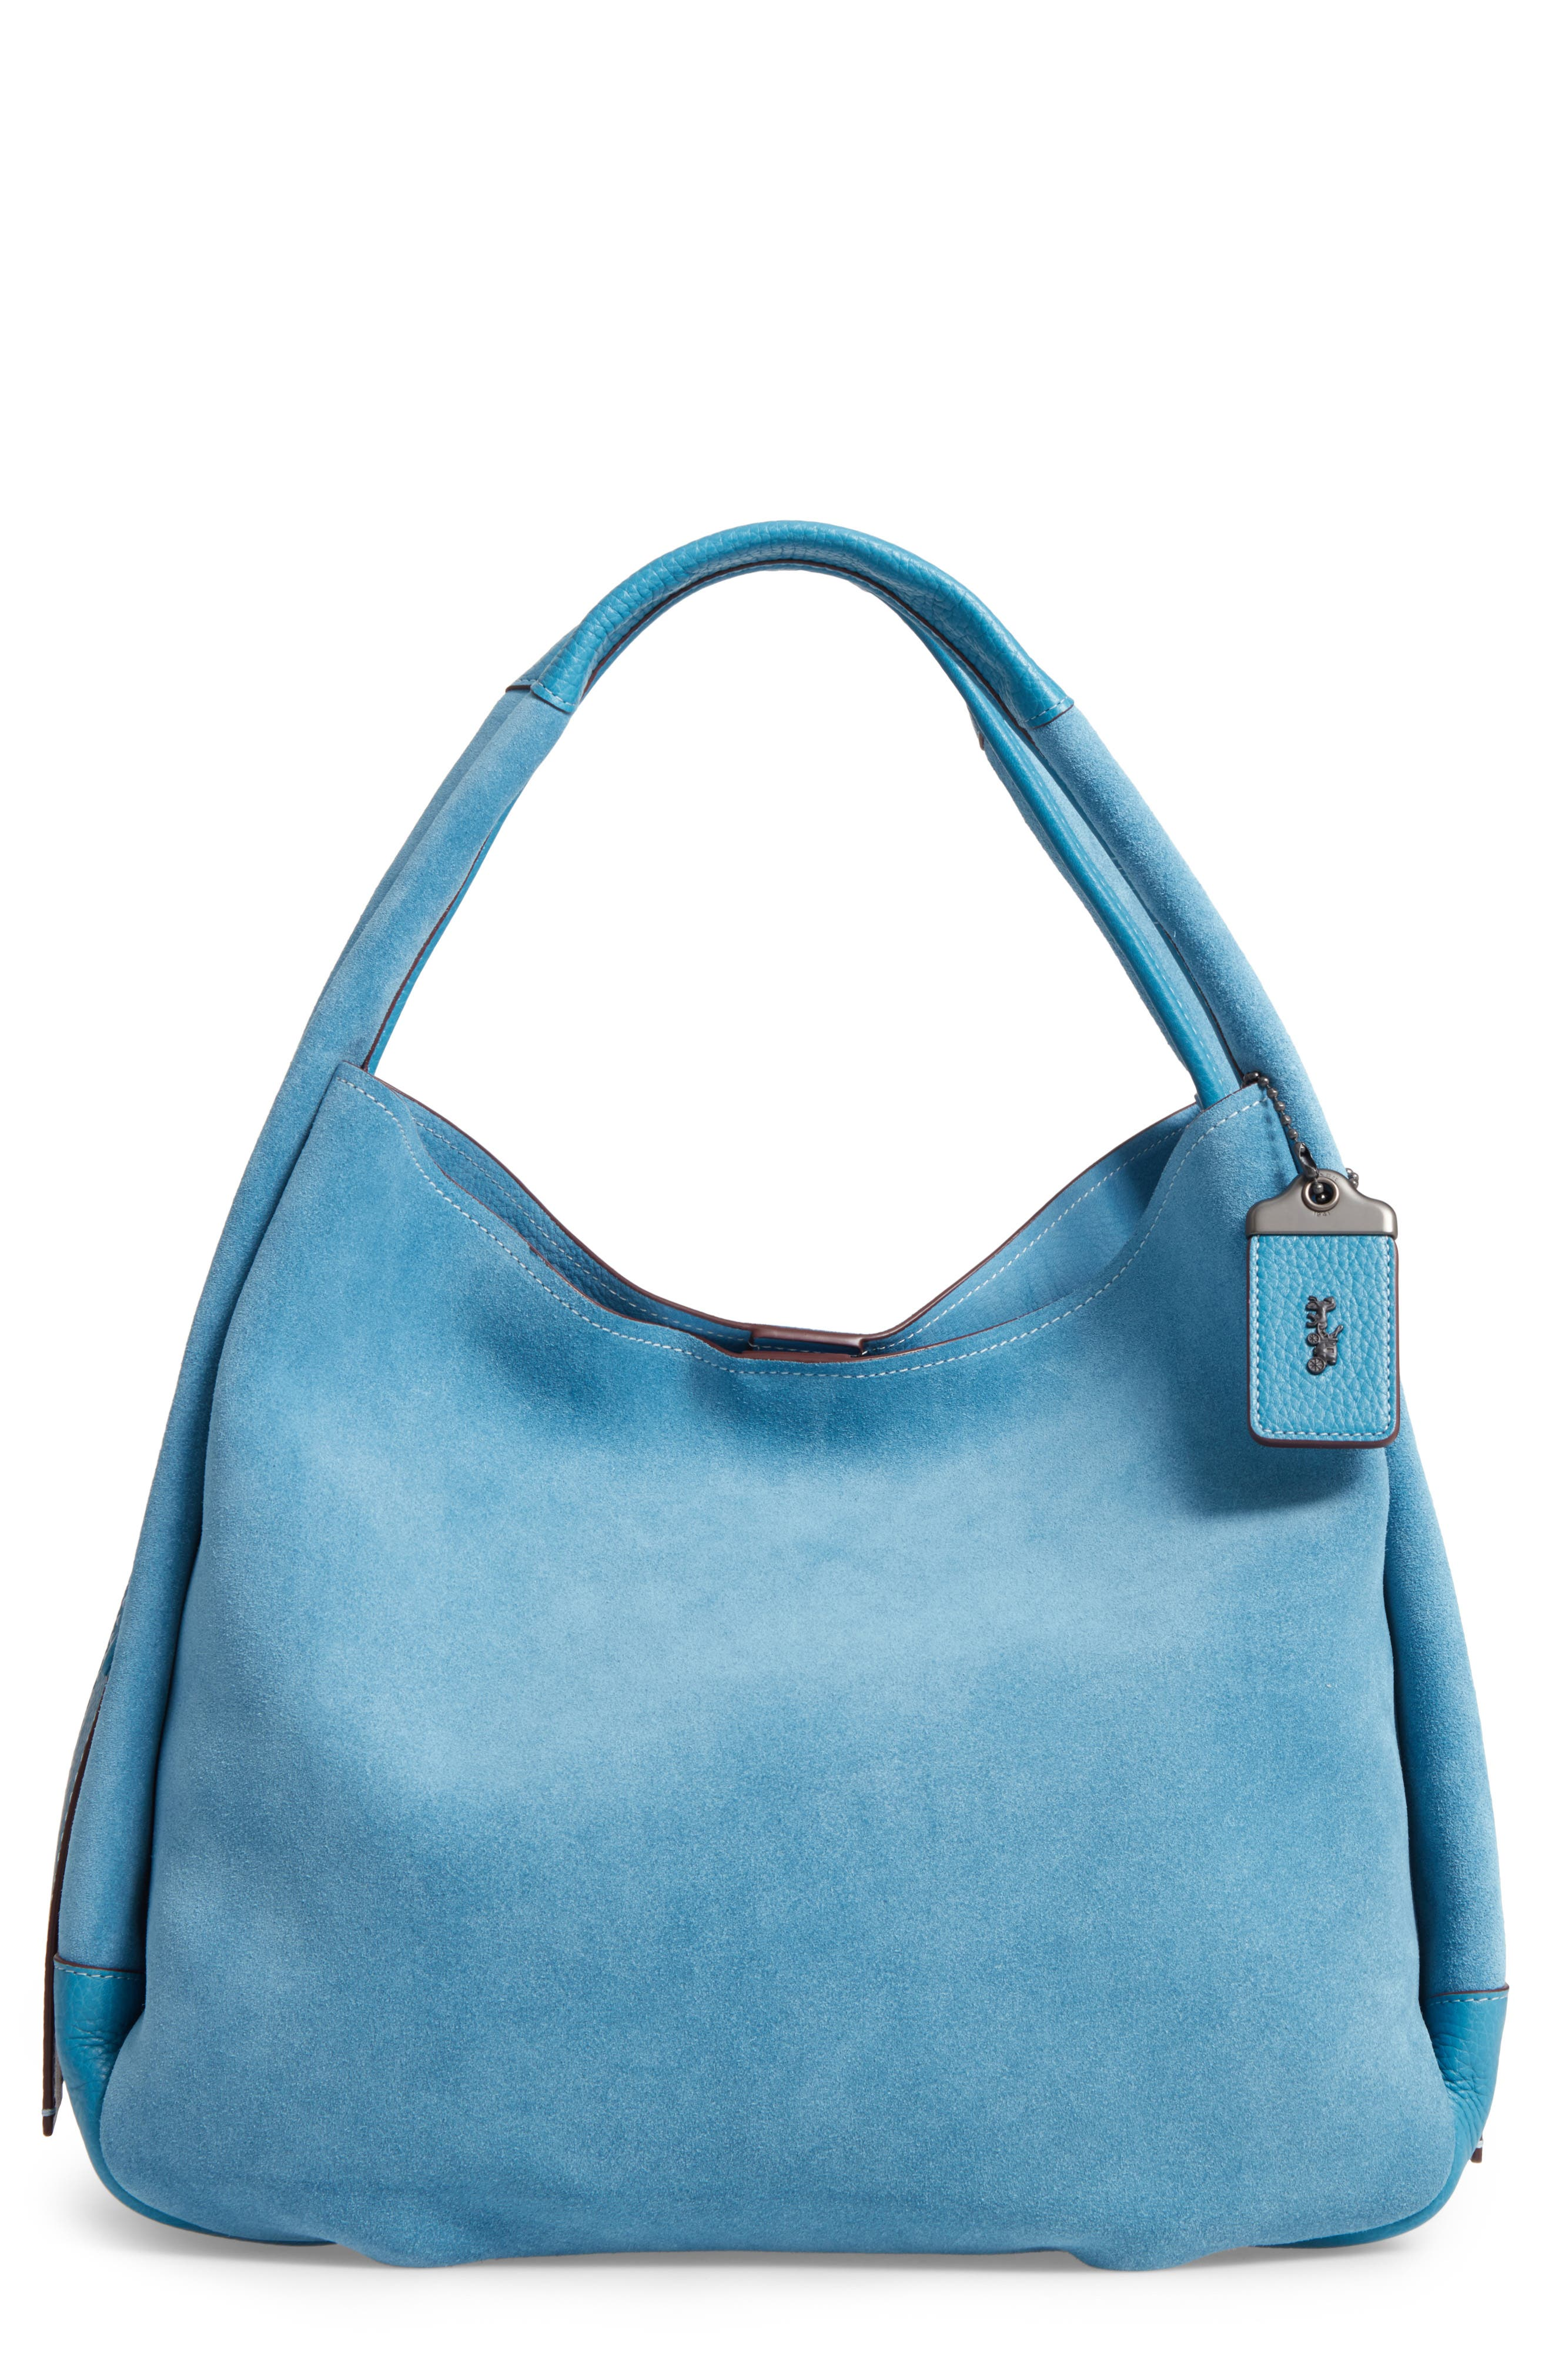 Bandit Suede Hobo & Removable Shoulder Bag,                             Main thumbnail 1, color,                             453